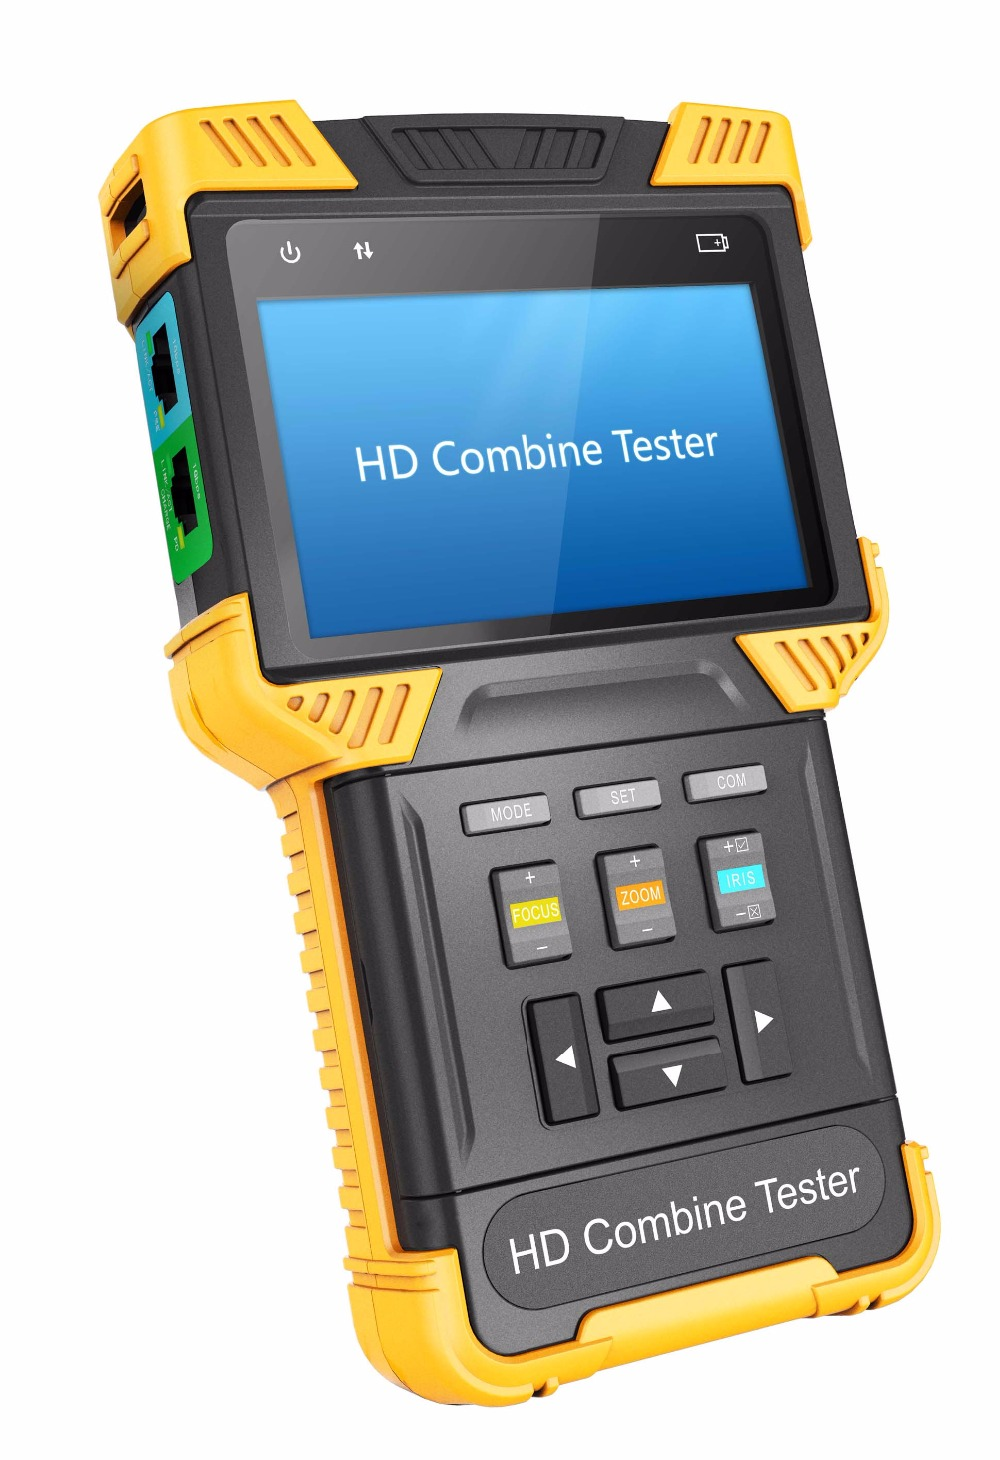 IP Tester CCTV Tester, Analog camera IP Multifunction 2-in-1 Tester, CCTV HD Combine Tester